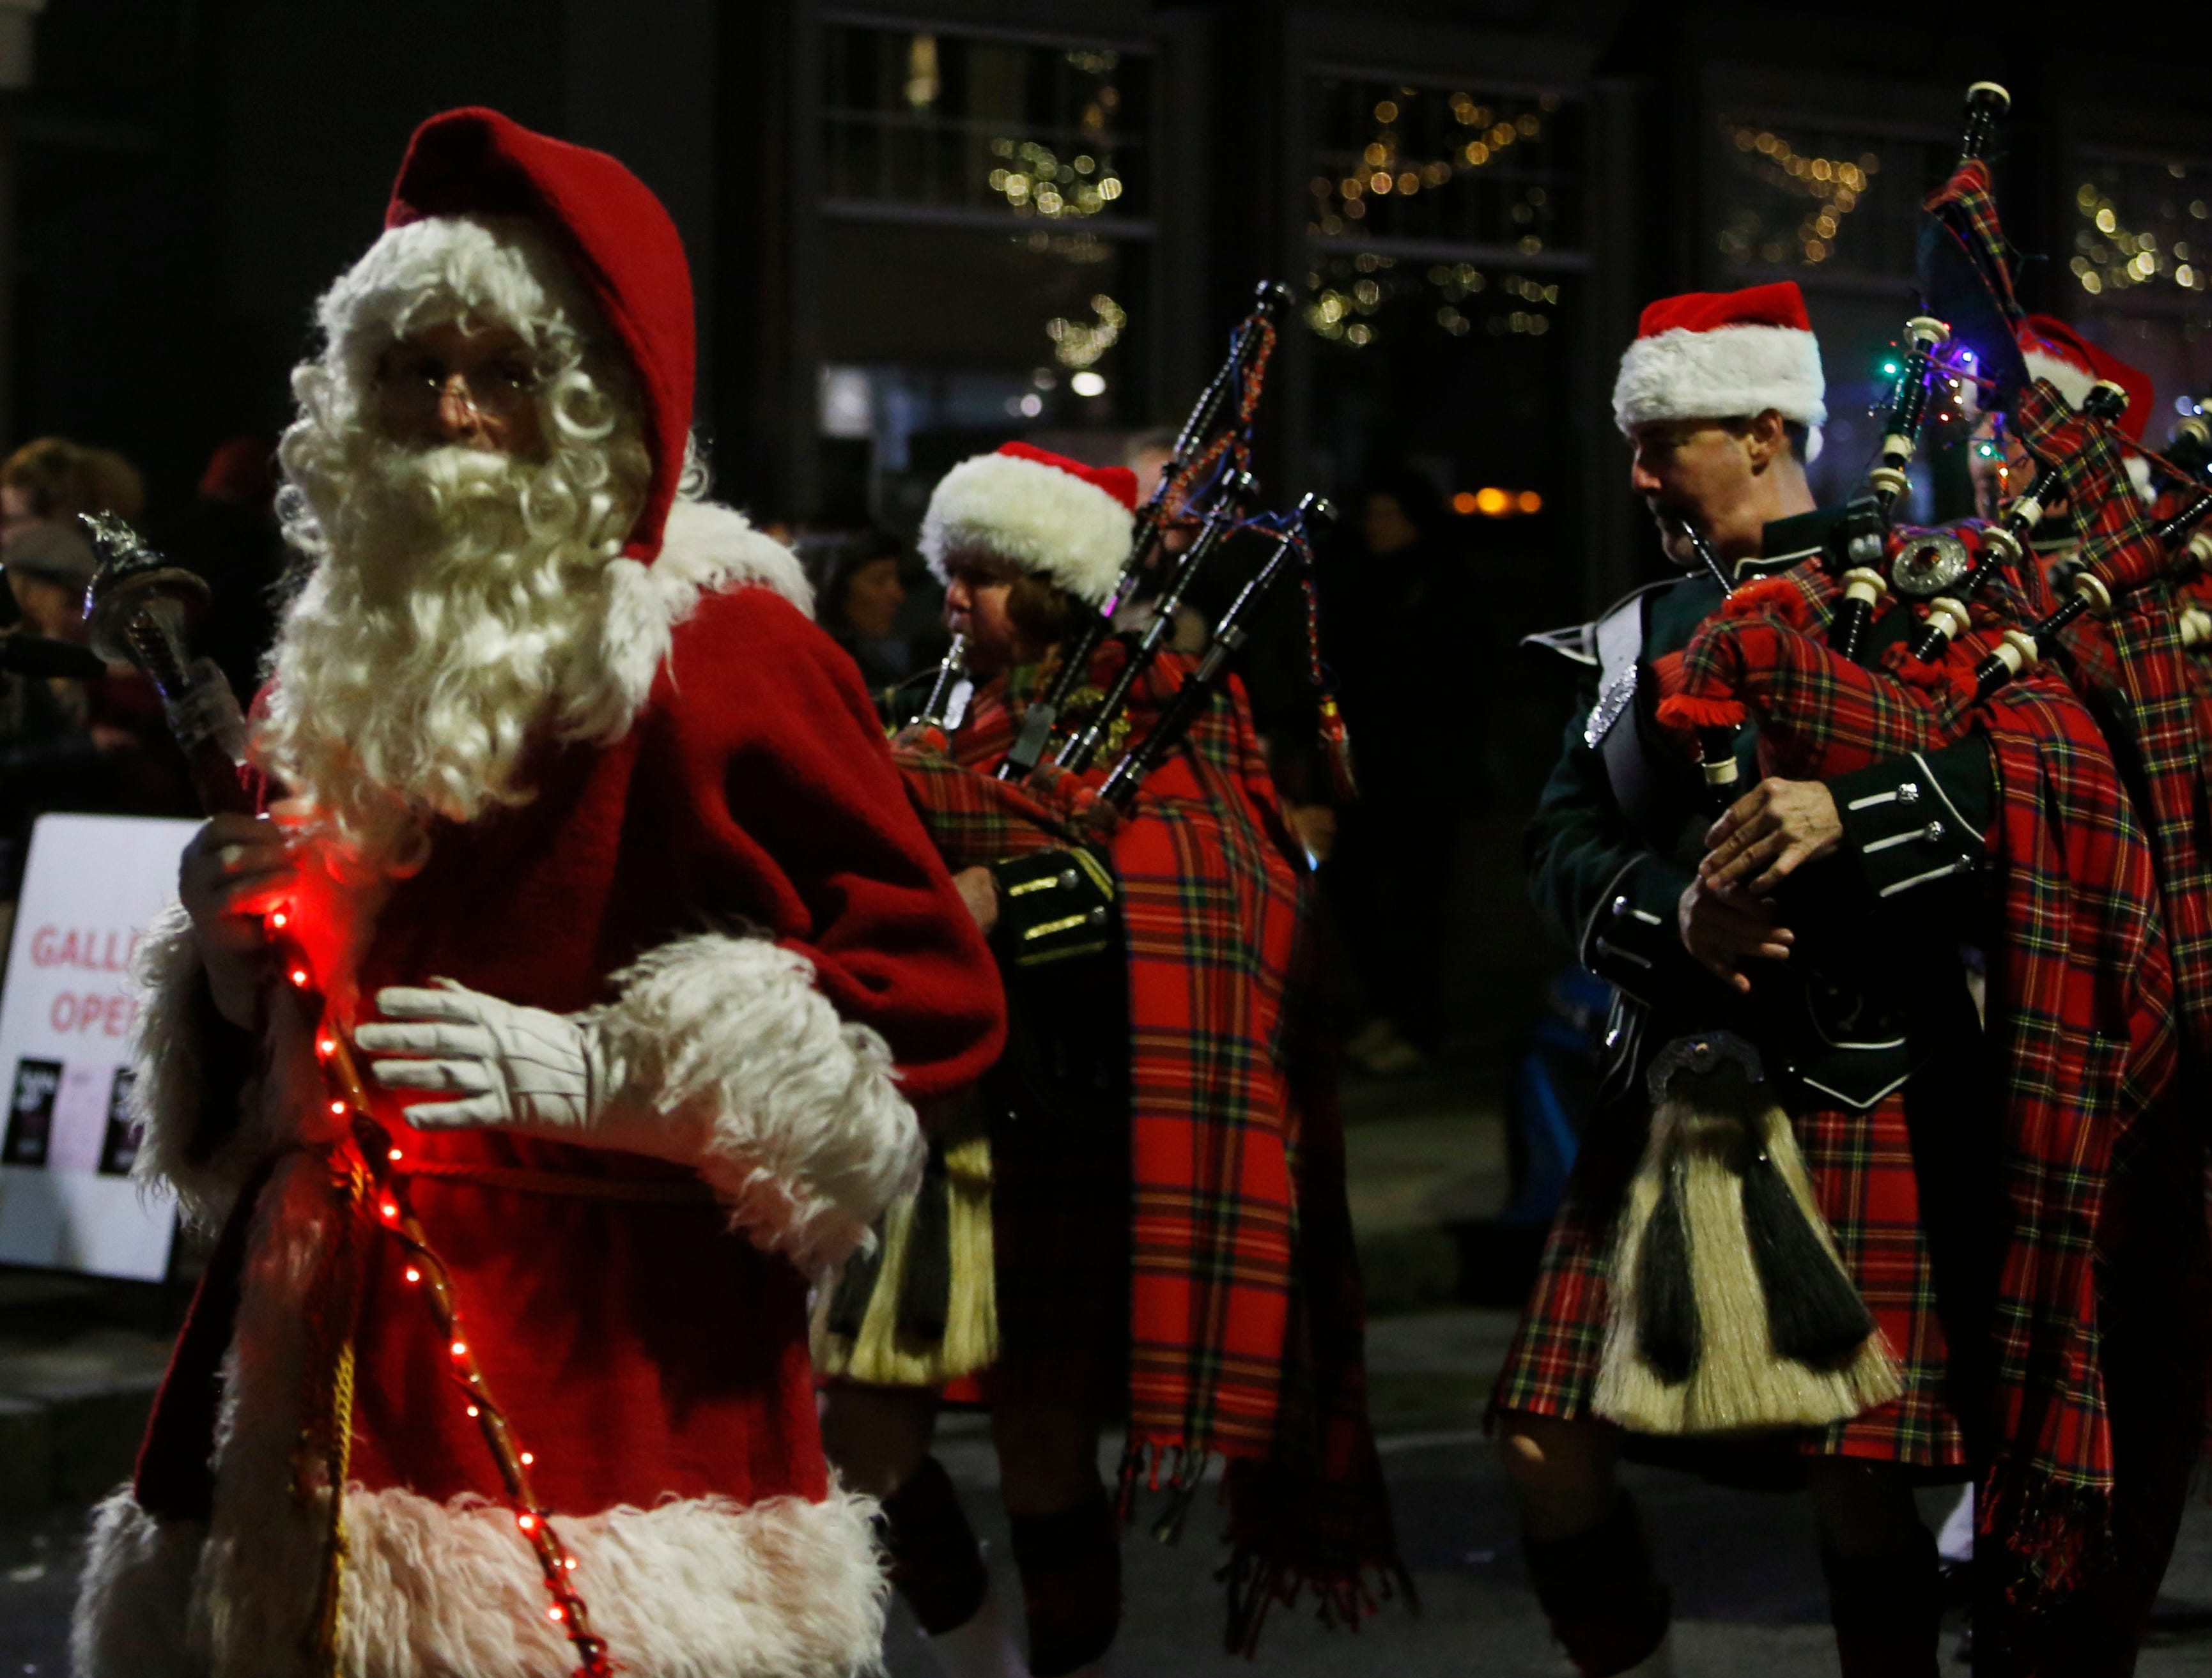 Members of the Amerscot Highland Pipe Band march in the Celebration of Lights Parade in the City of Poughkeepsie on November 30, 2018.